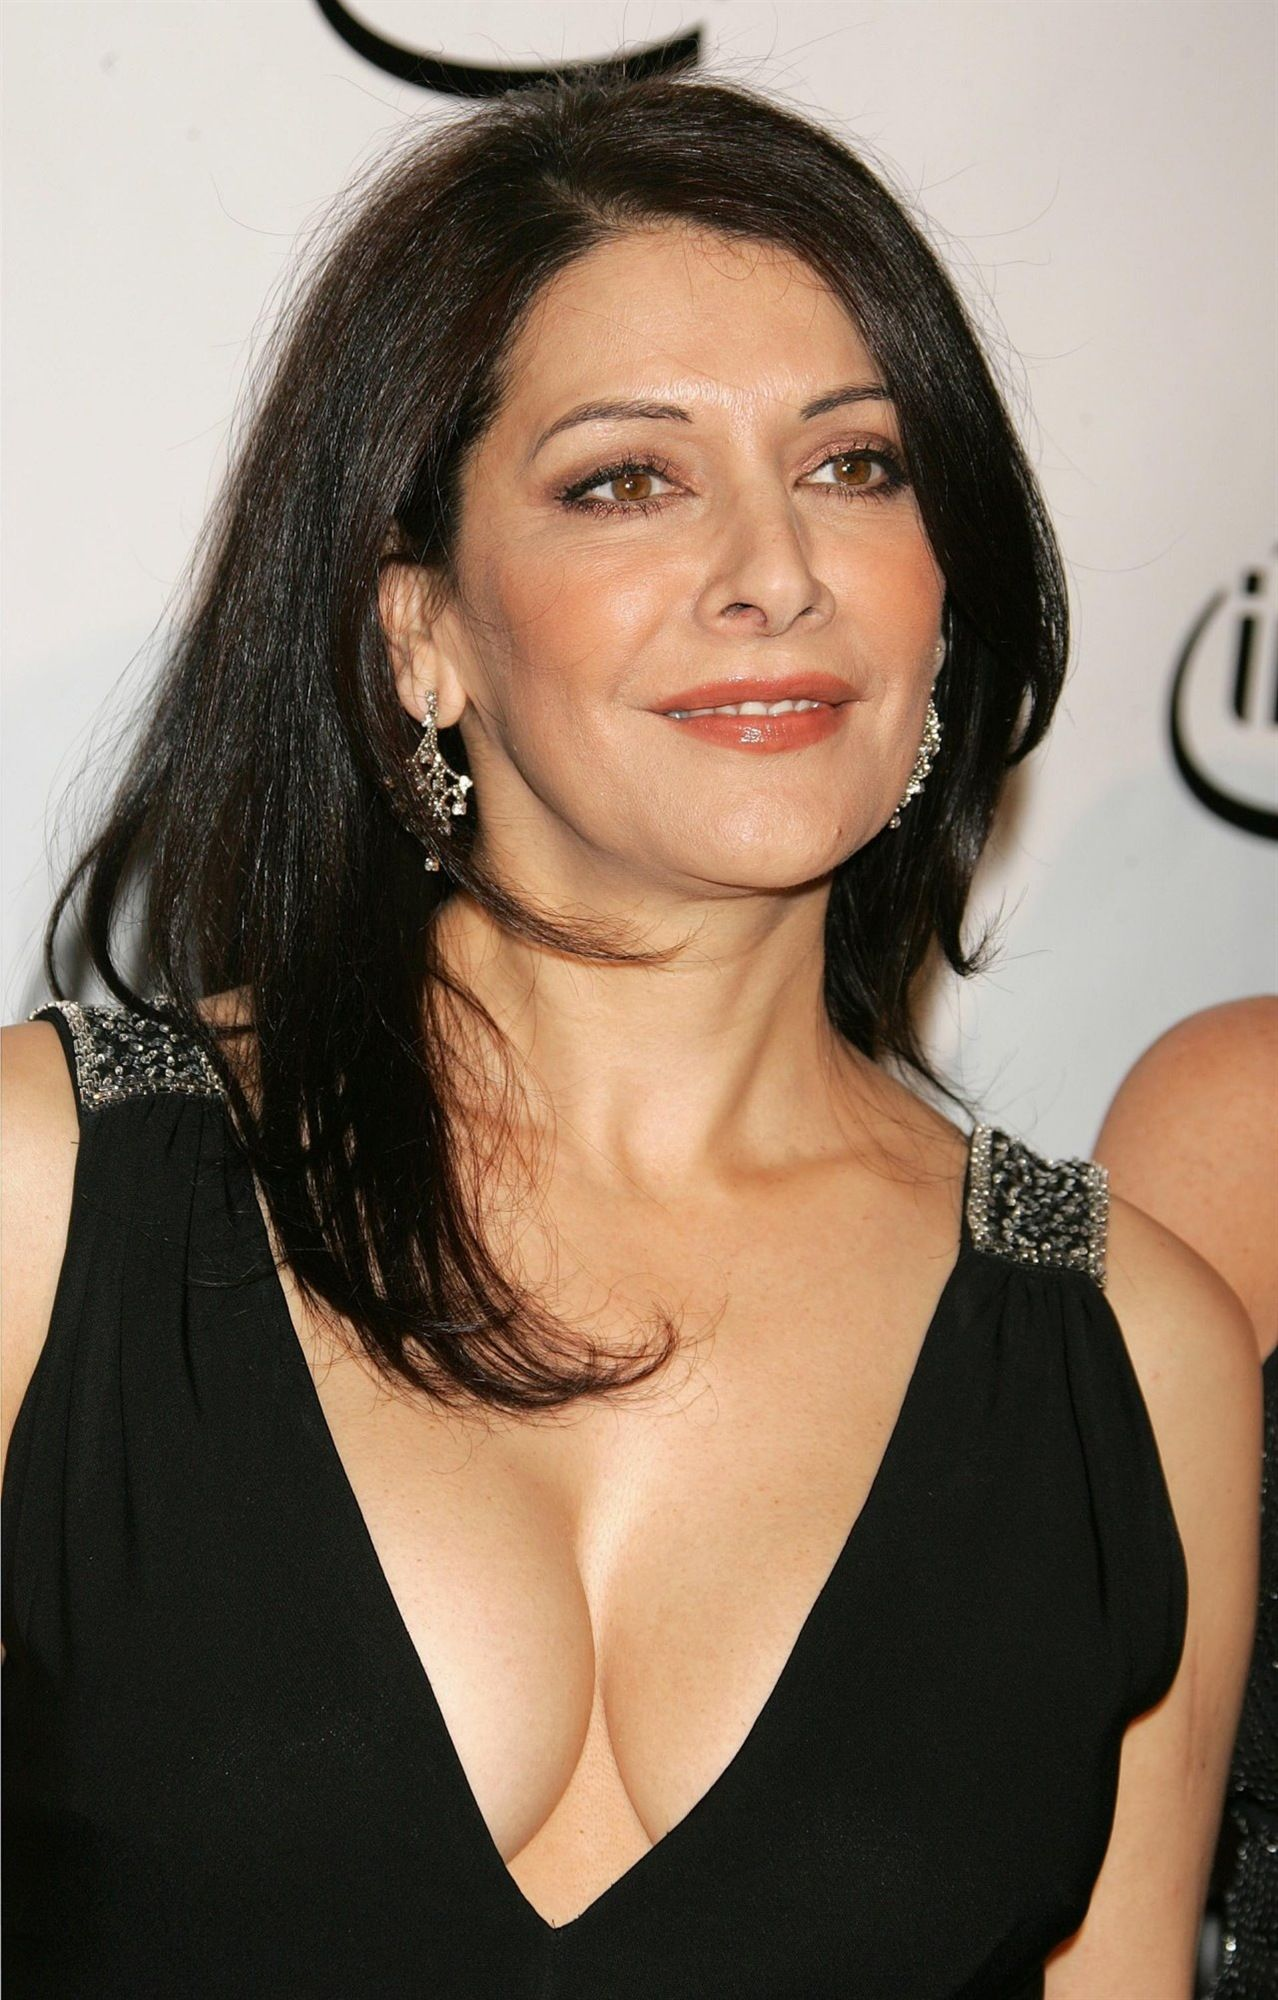 Marina Sirtis (born 1955 (naturalized American citizen)